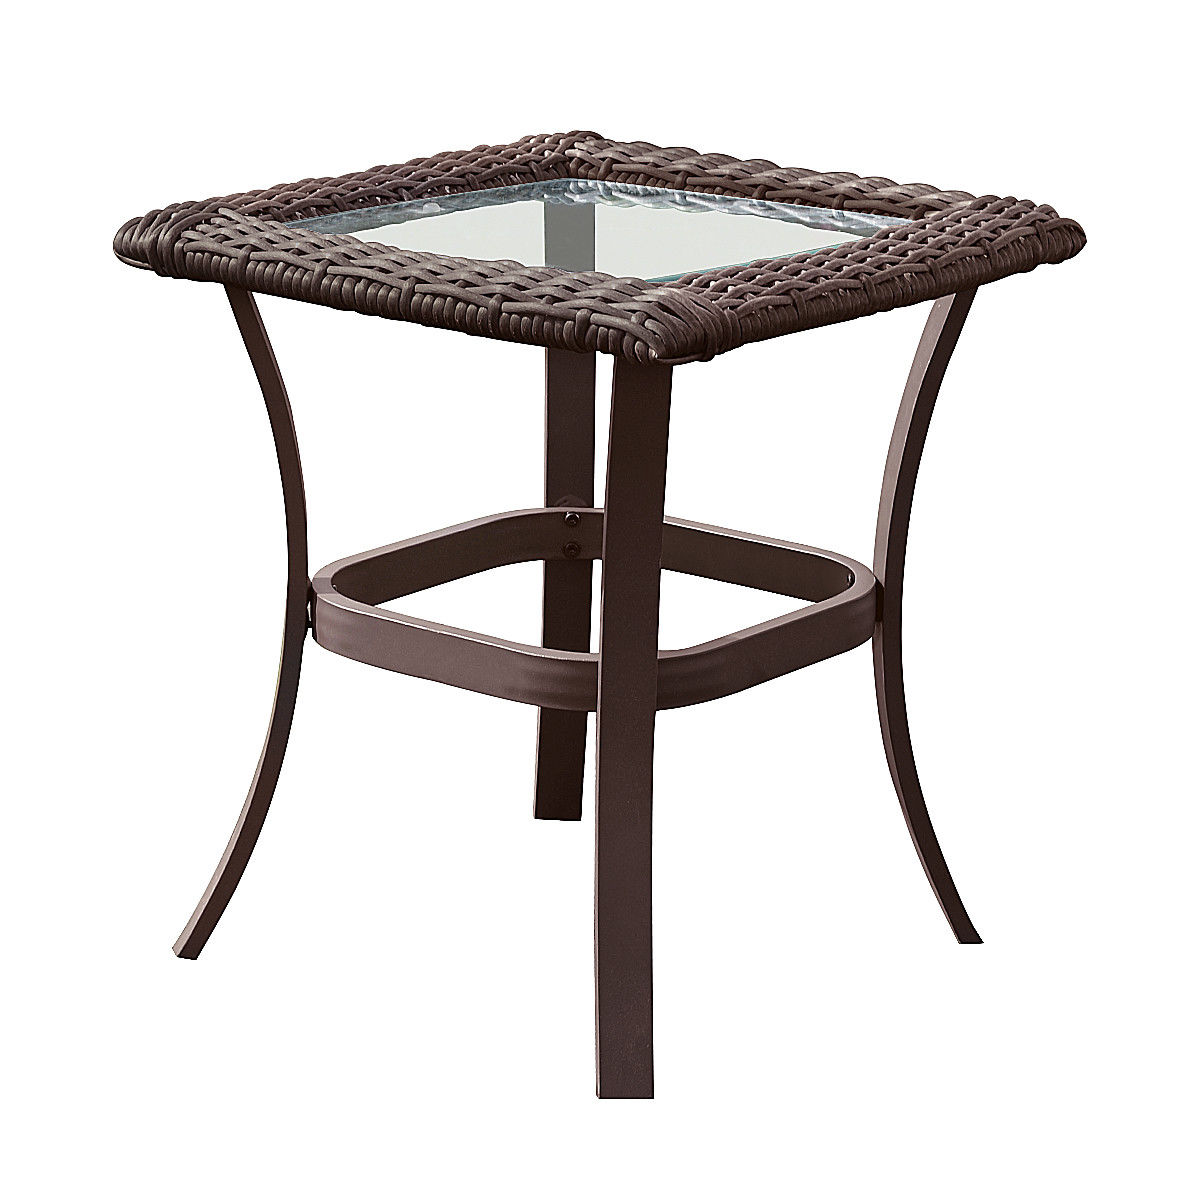 Gymax 3PC Patio Rattan Wicker Furniture Set Cushioned Outdoor Garden - image 2 of 8